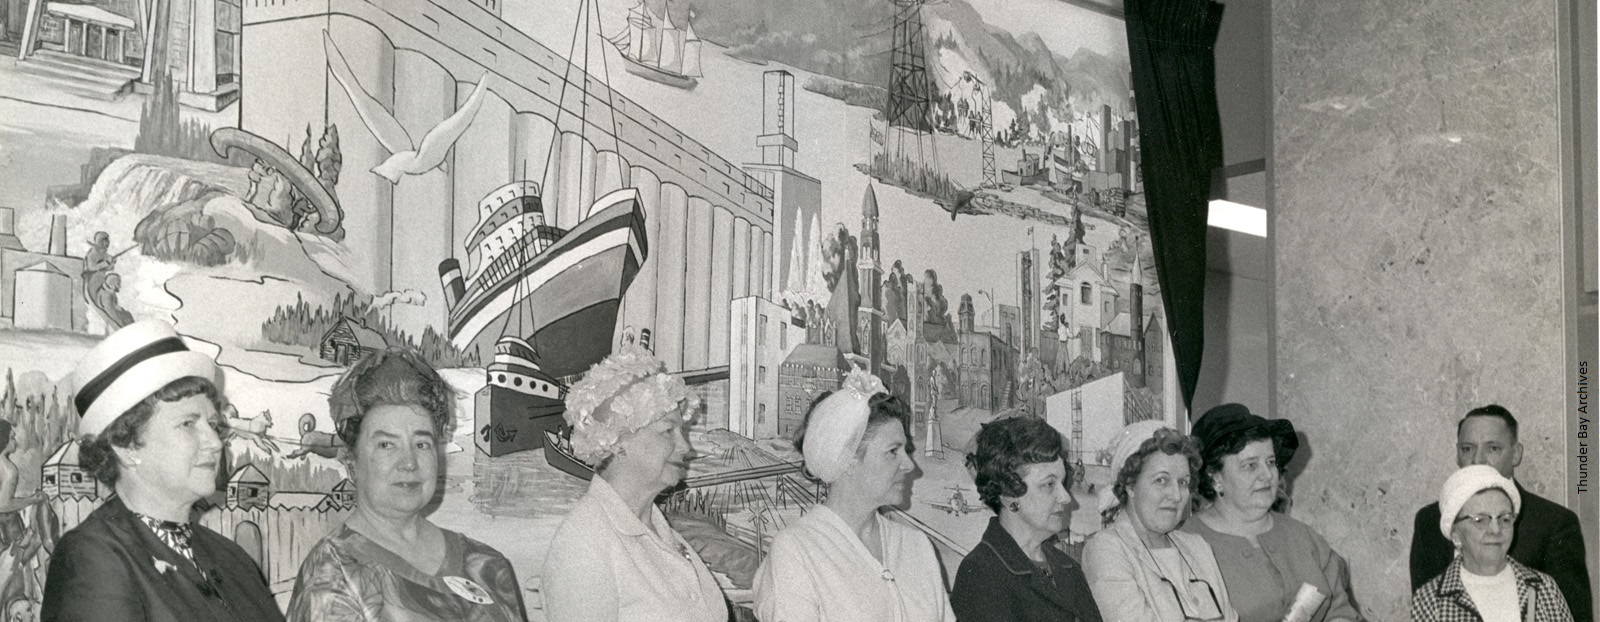 A group of women stand in front of a mural in city hall